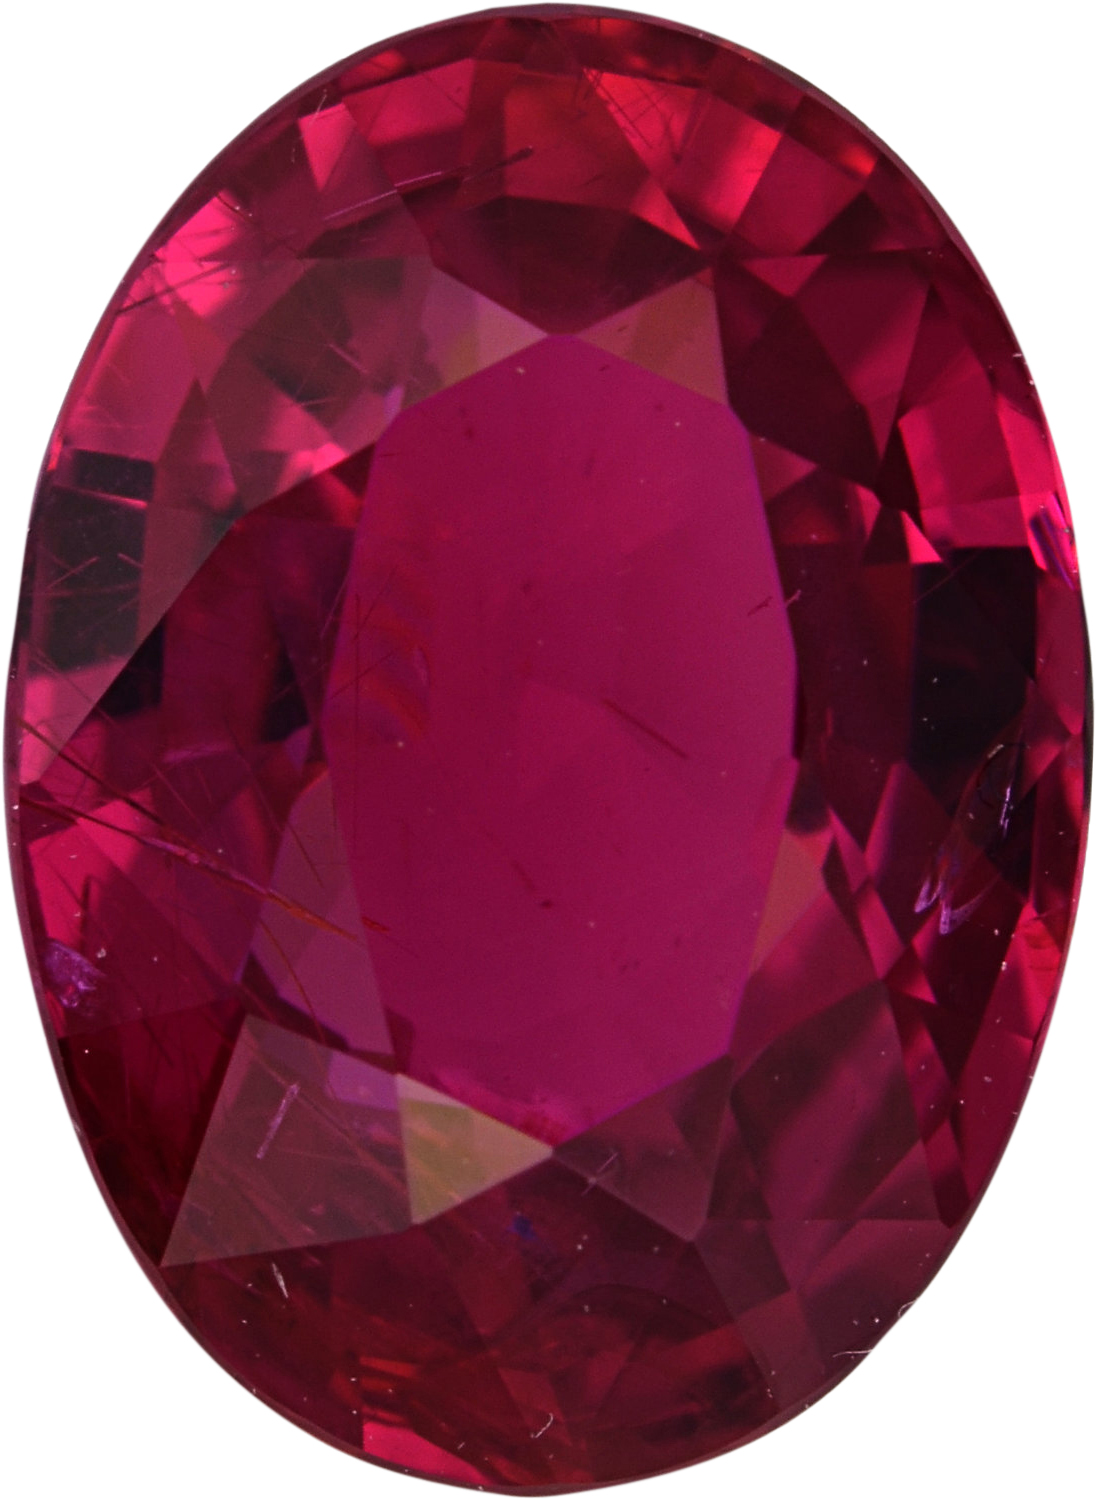 Classic  No Treatment Ruby Loose Gem in Oval Cut, Vibrant Purple Red, 8.88 x 6.50  mm, 2.1 Carats